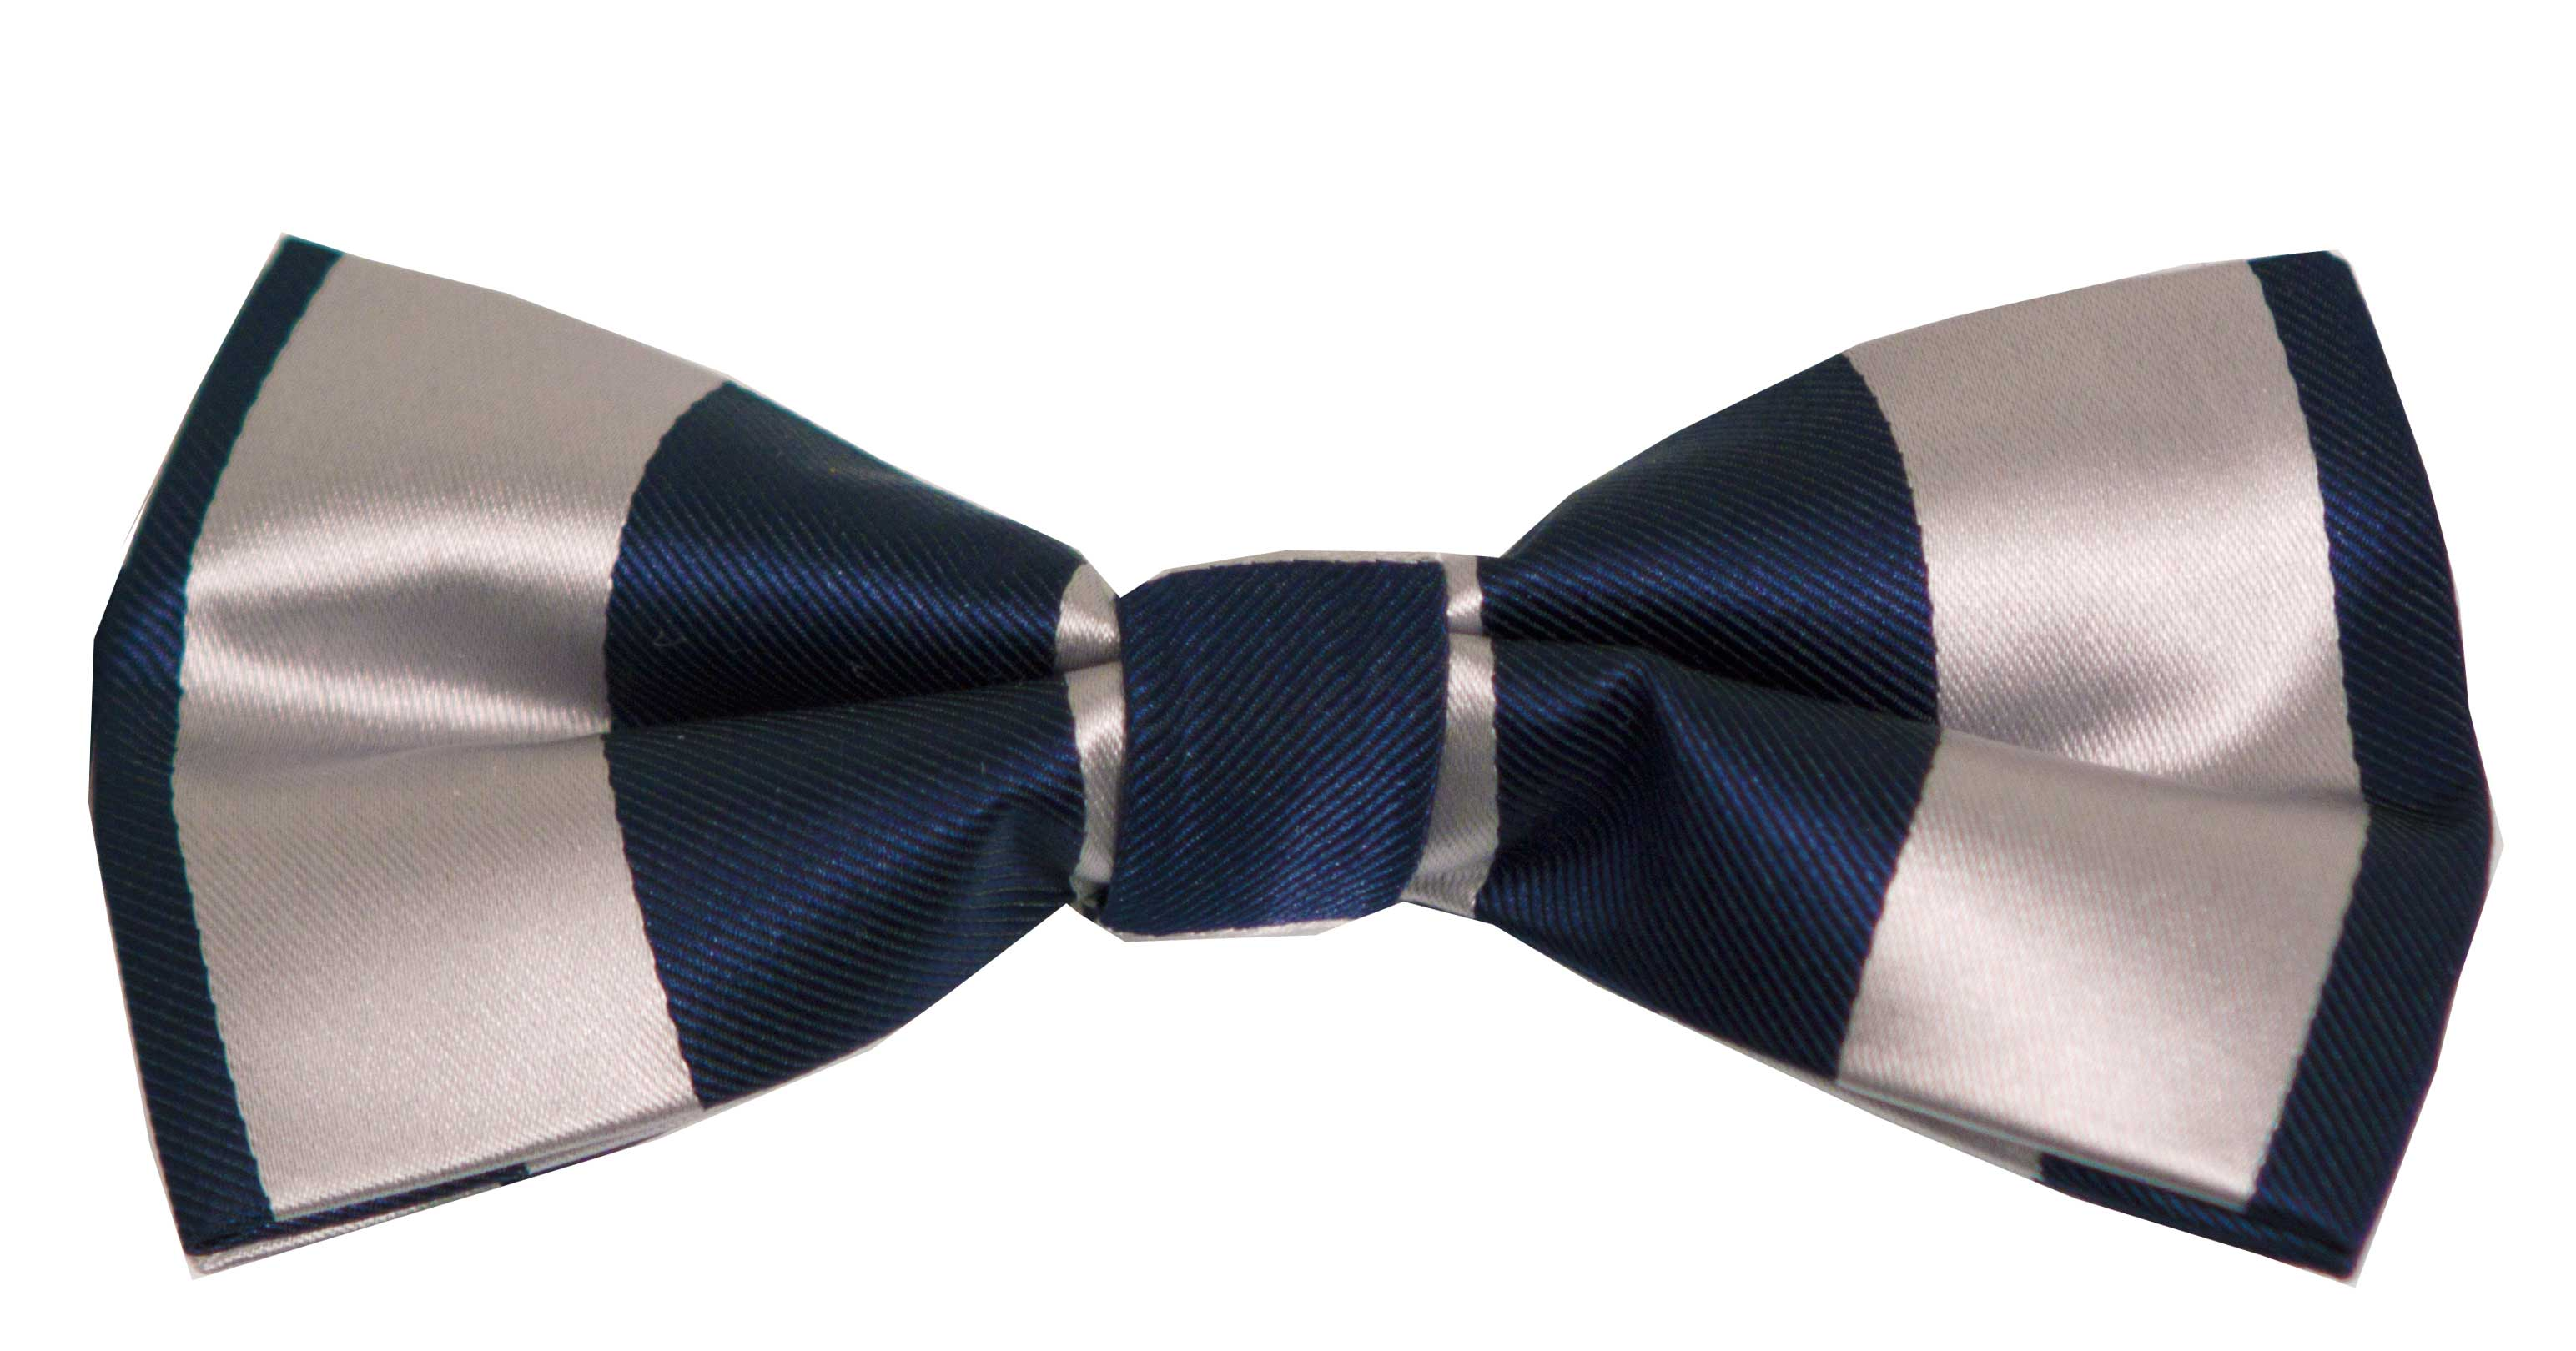 Bow tie (blue and grey)